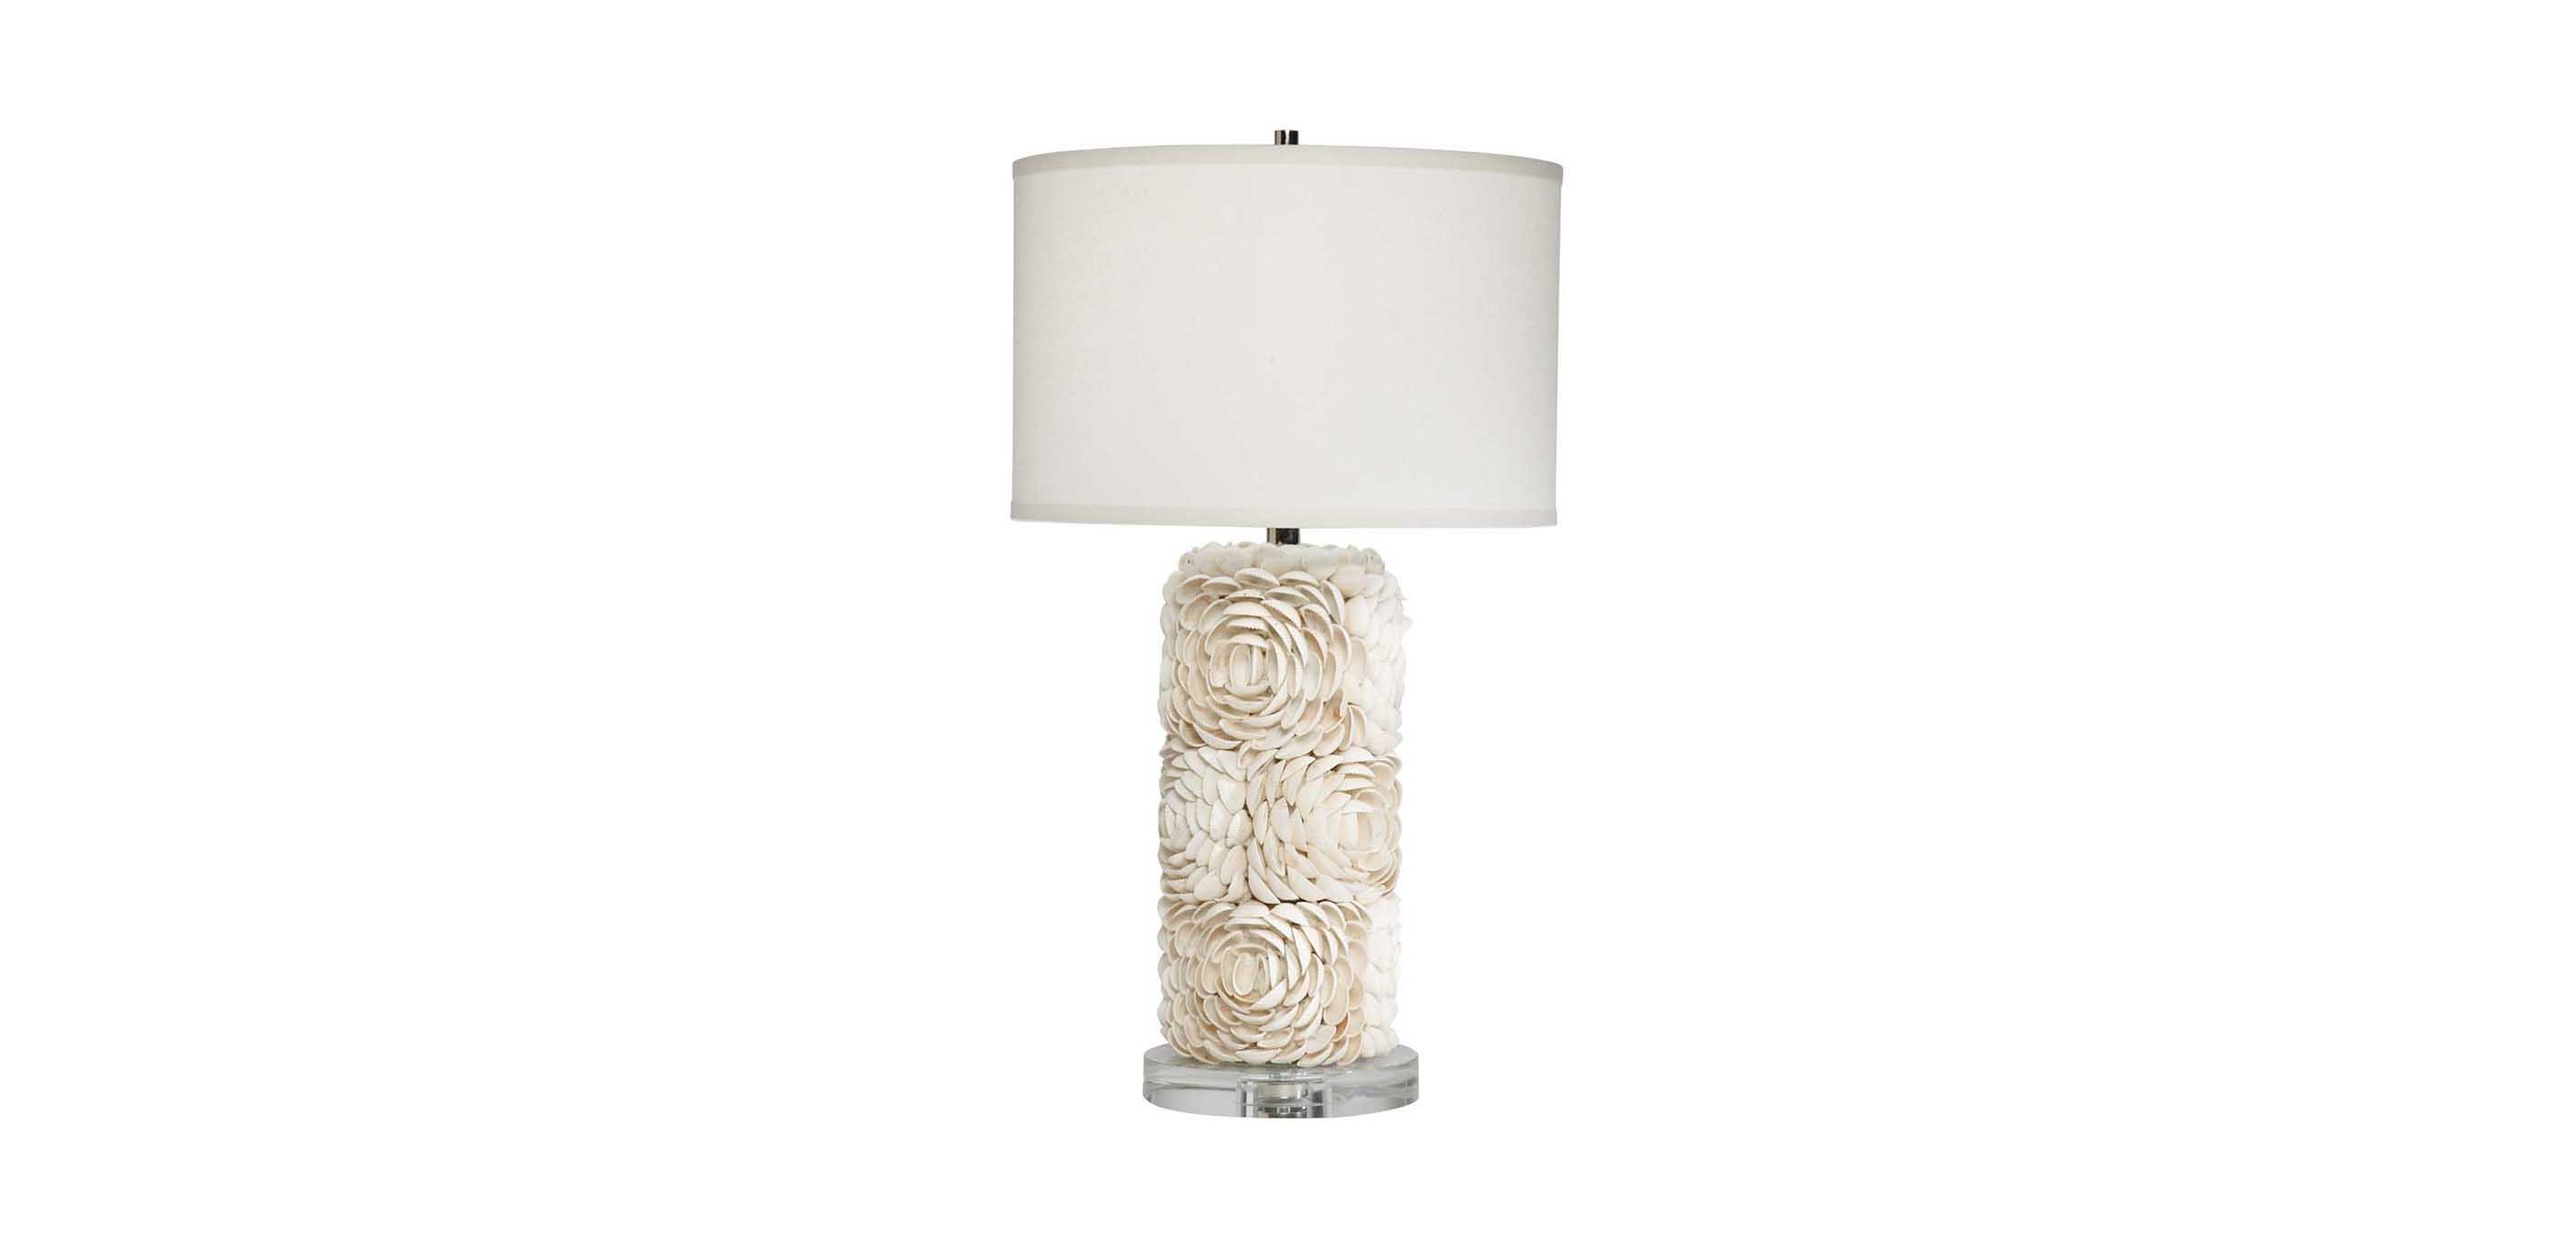 Images null  sc 1 st  Ethan Allen & Mia Table Lamp | TABLE LAMPS | Ethan Allen